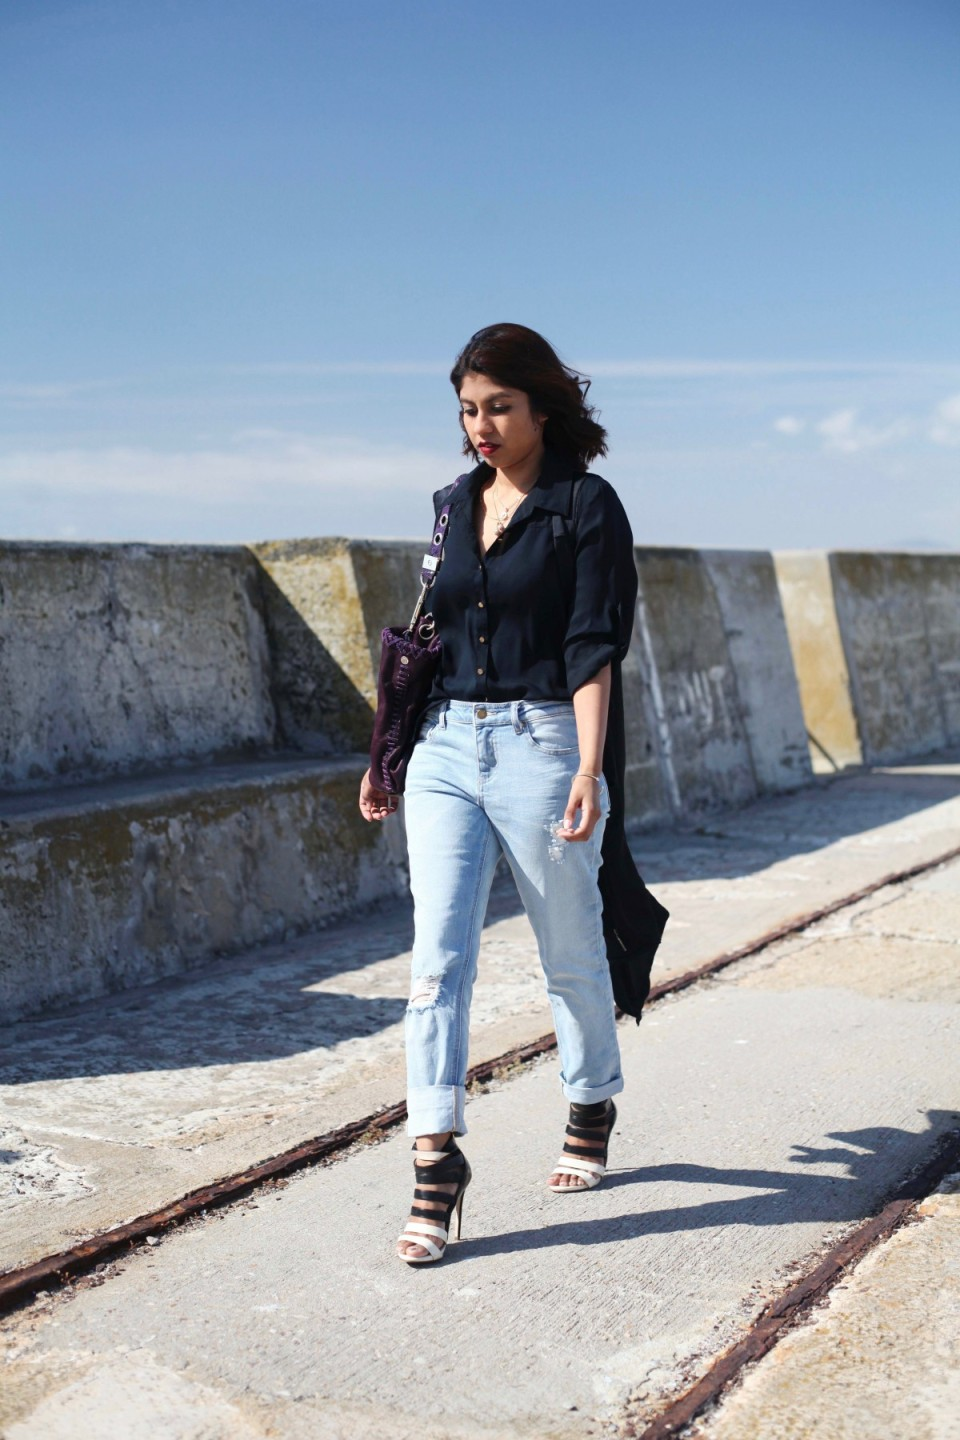 Fashion blog lookbook with boyfriend jeans and black shirt